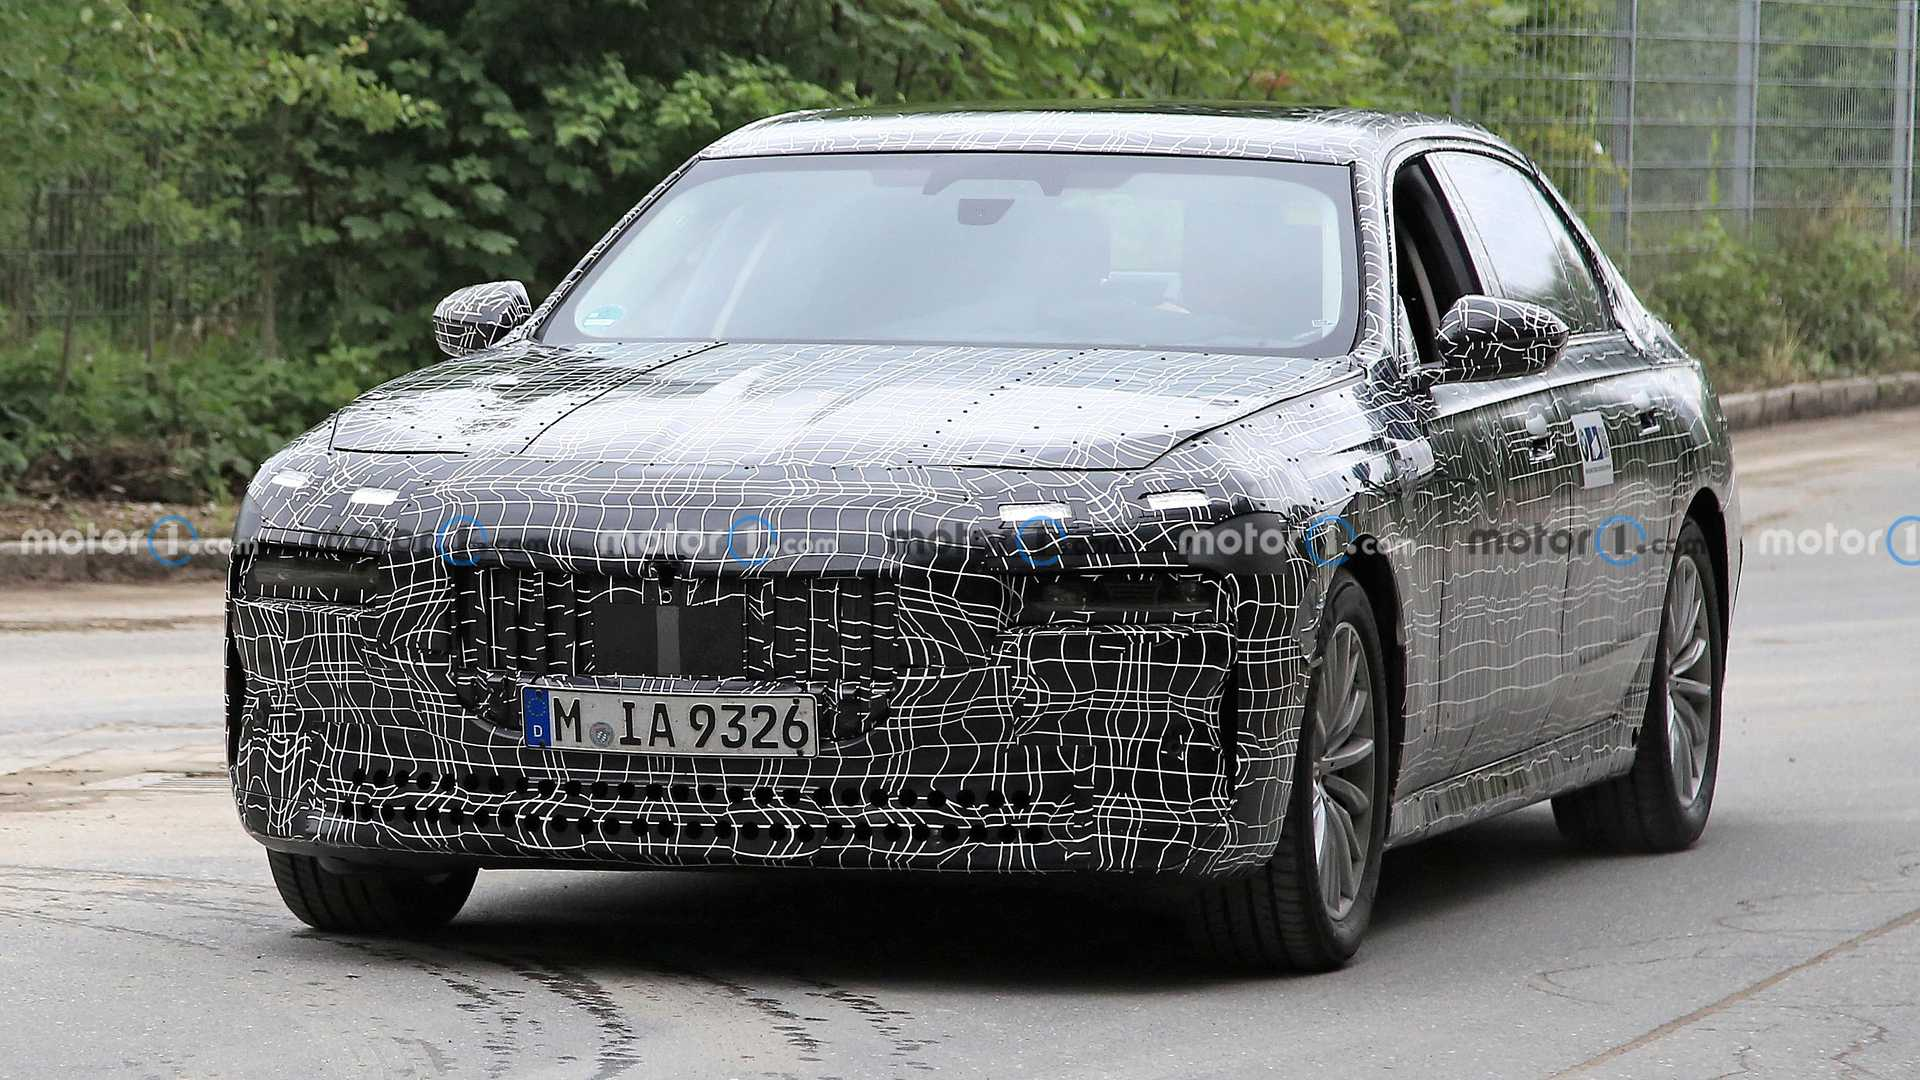 Big Machine: The New BMW 7-Series Introduces Revised Engines and A Roaring V8 To The Lineup